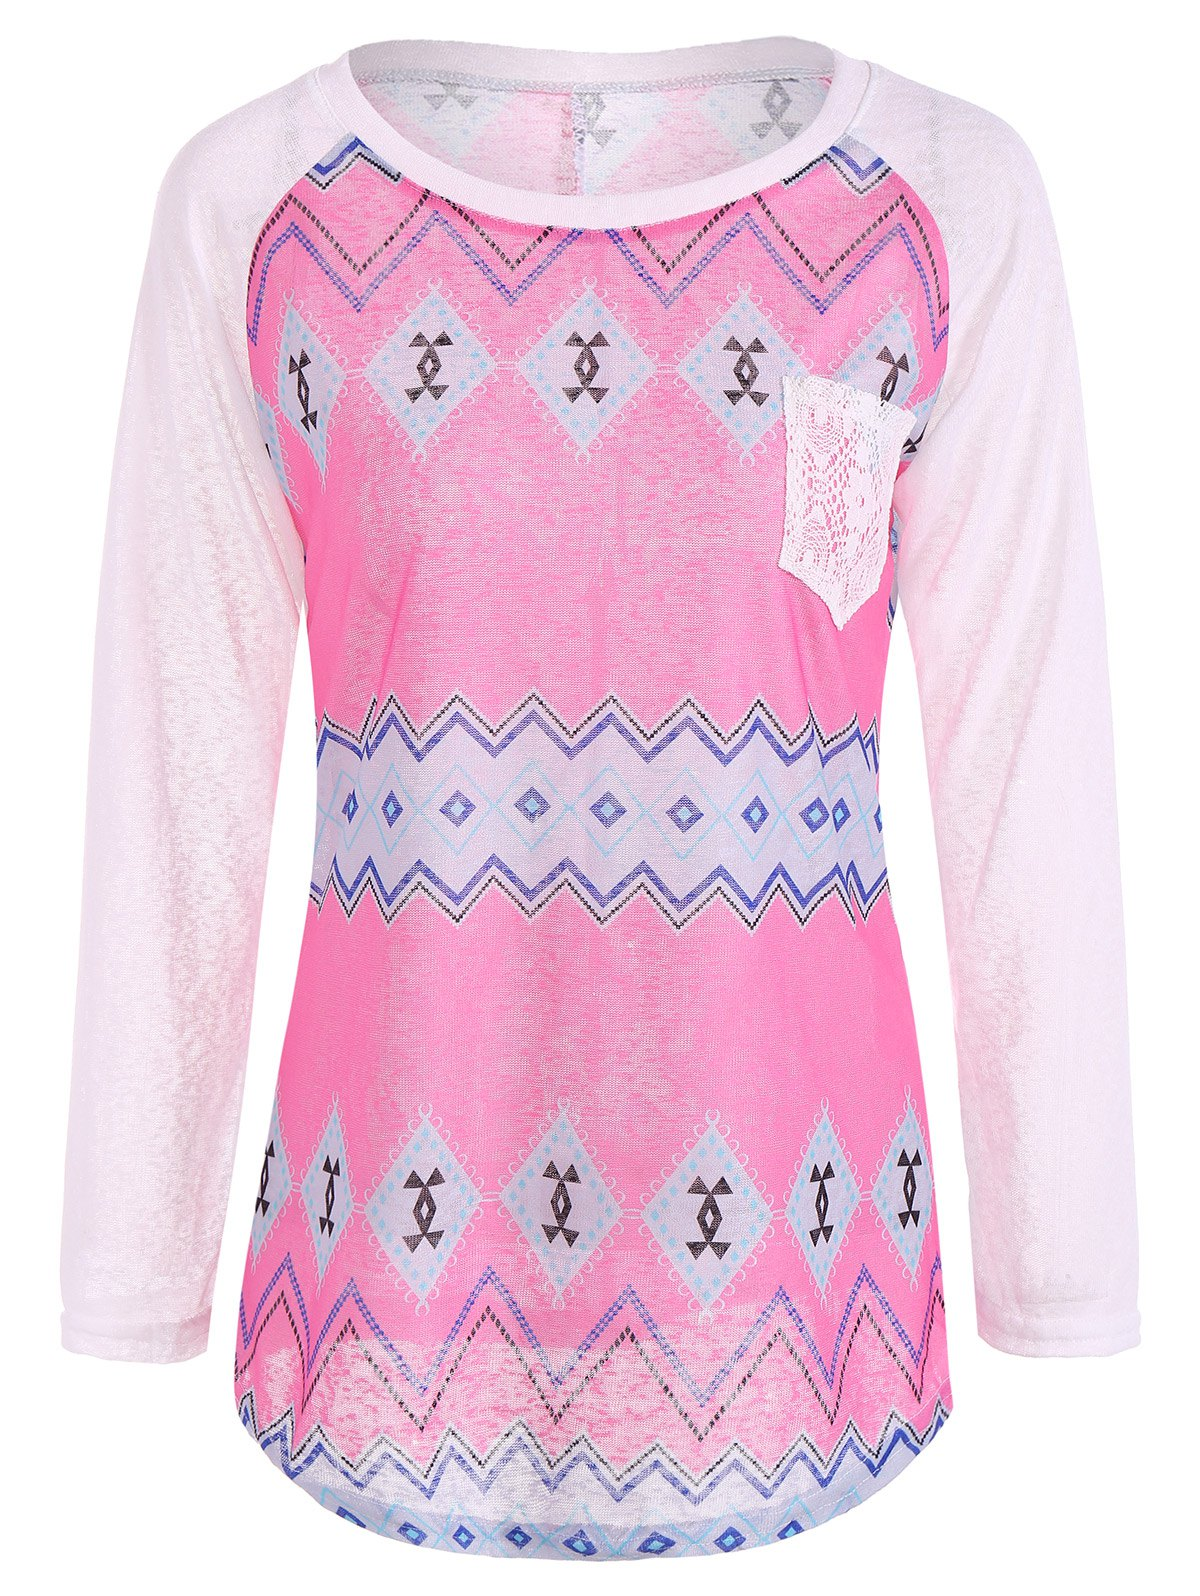 Tribal Print Long Sleeve Pocket TeeClothes<br><br><br>Size: M<br>Color: ROSE + WHITE